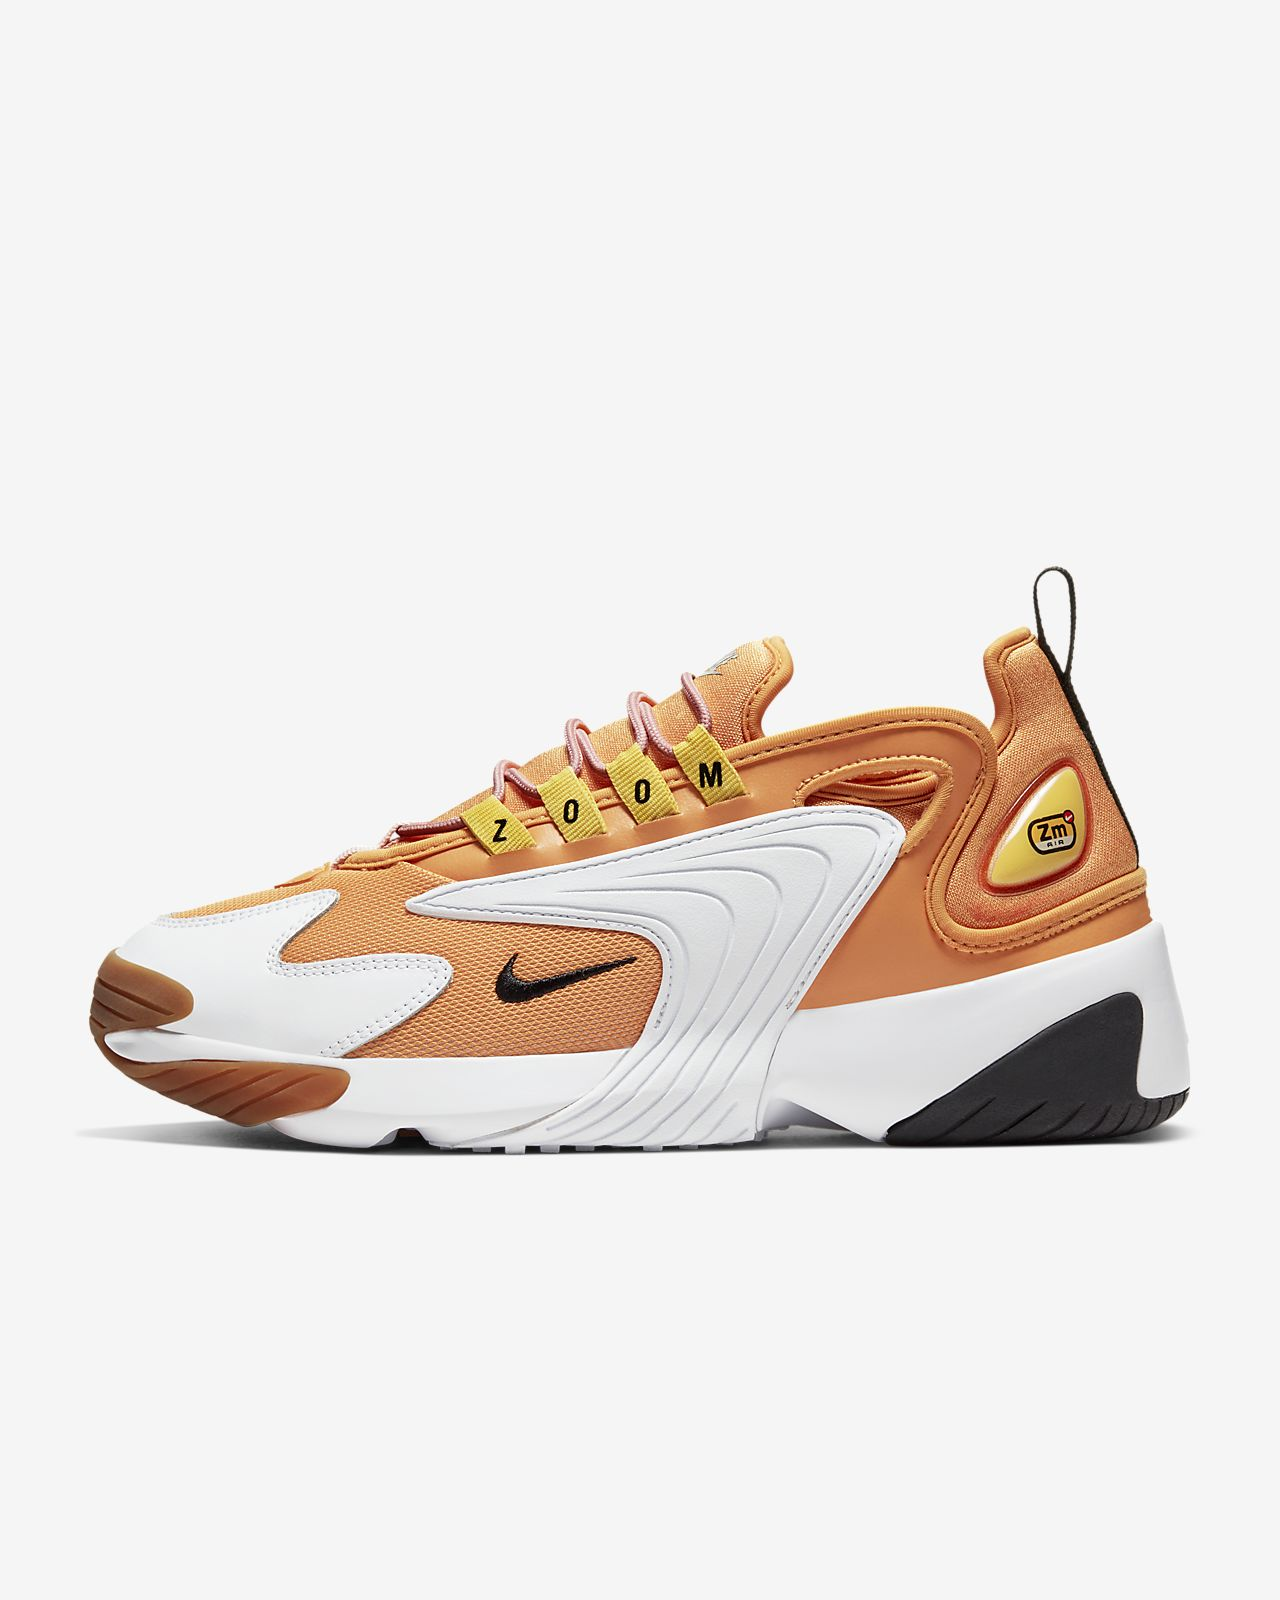 best quality sale retailer order Chaussure Nike Zoom 2K pour Femme. Nike FR